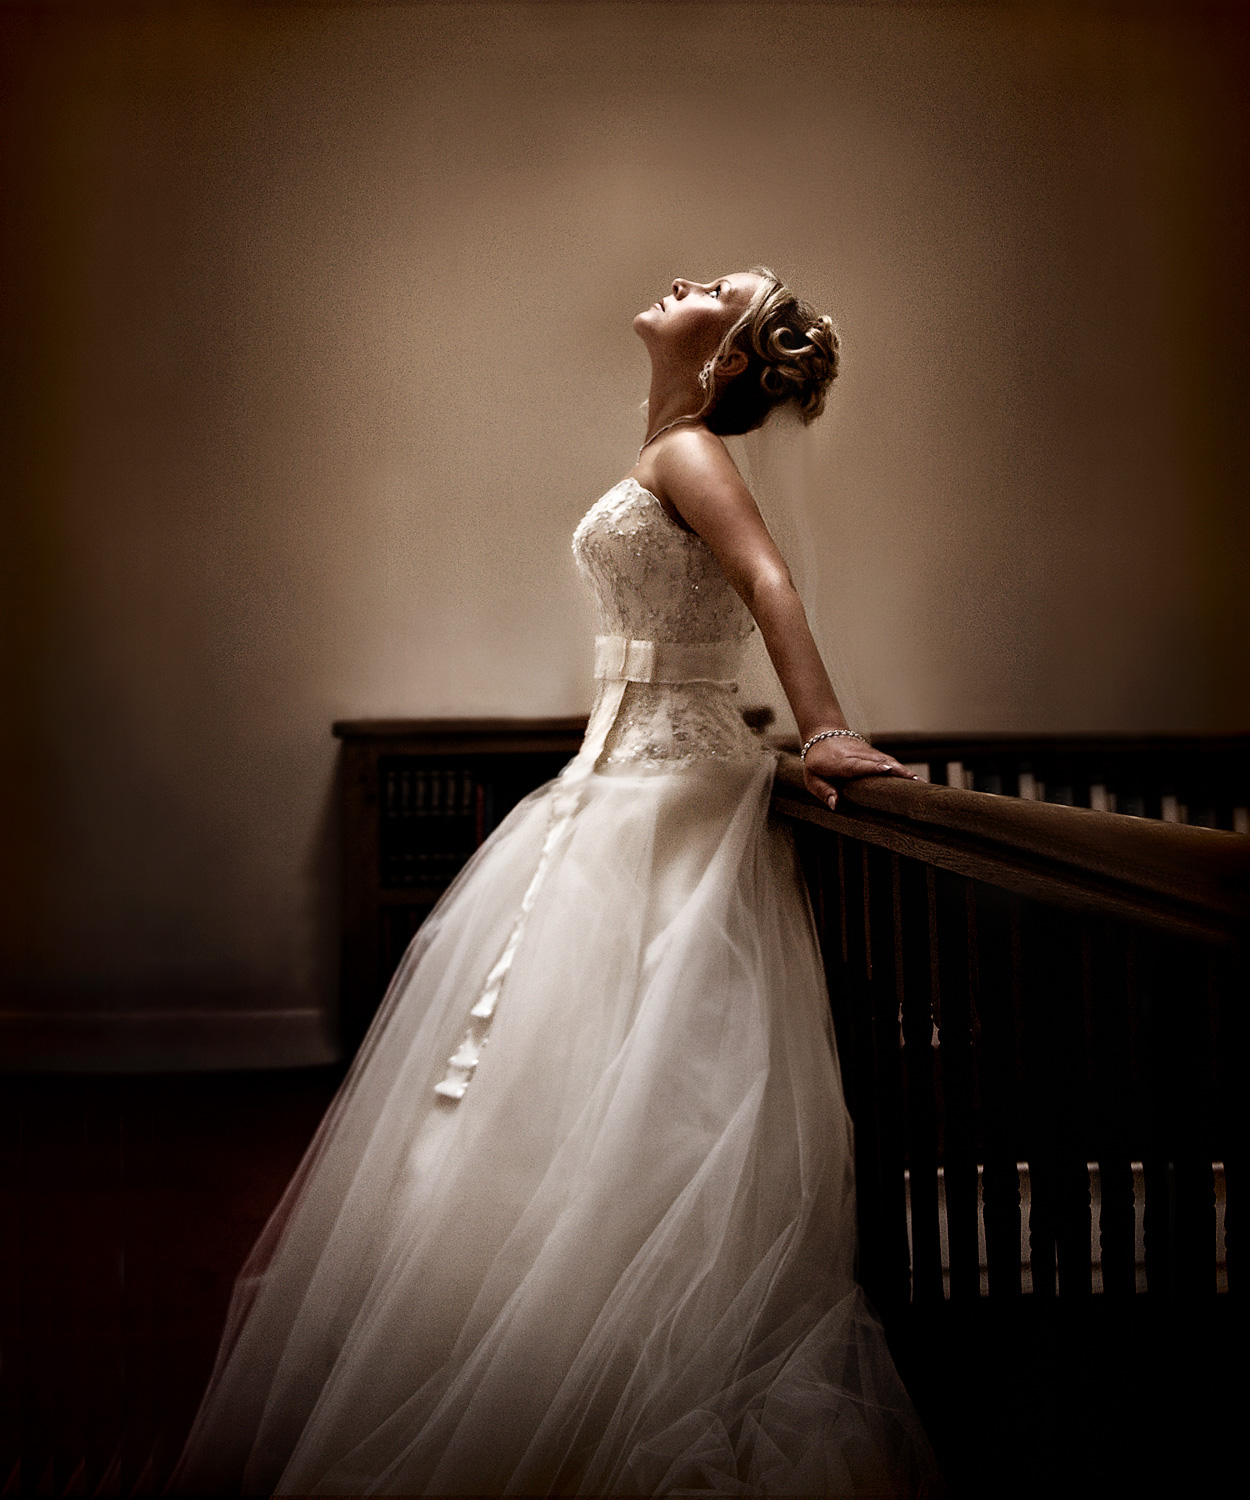 Best Classic Bridal Portrait - mpa